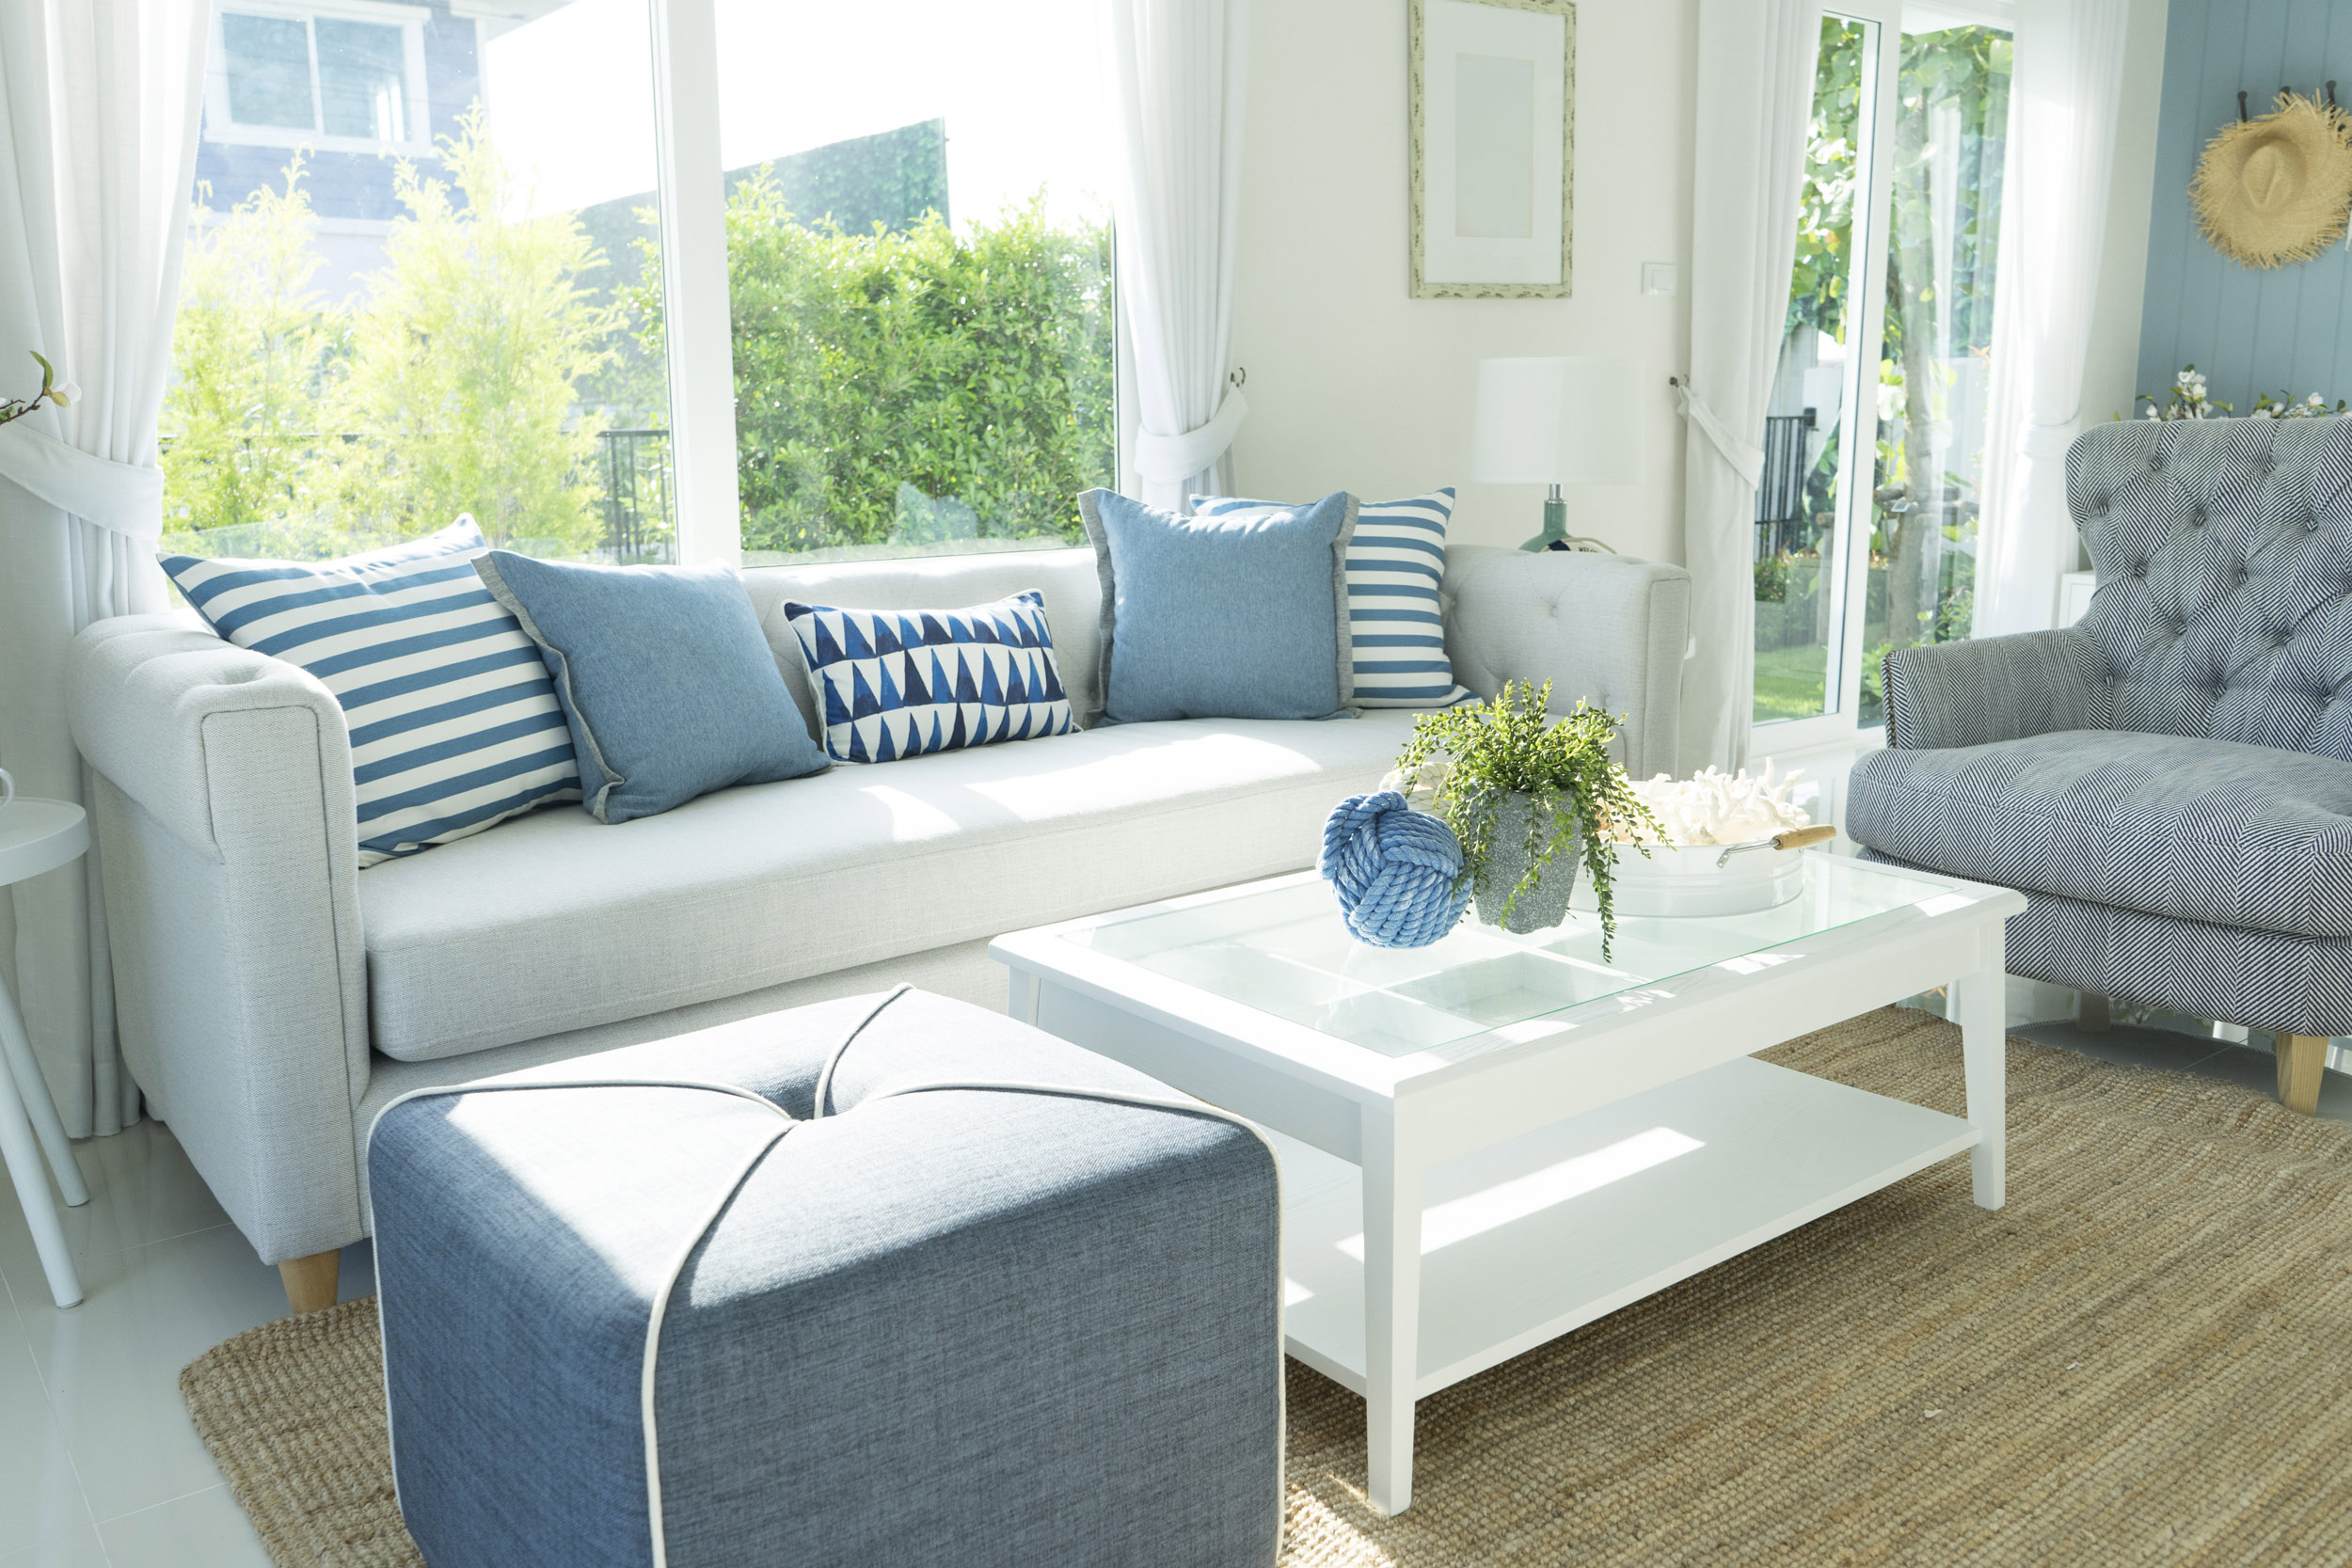 beach blue cushion and sofa of coastal home.